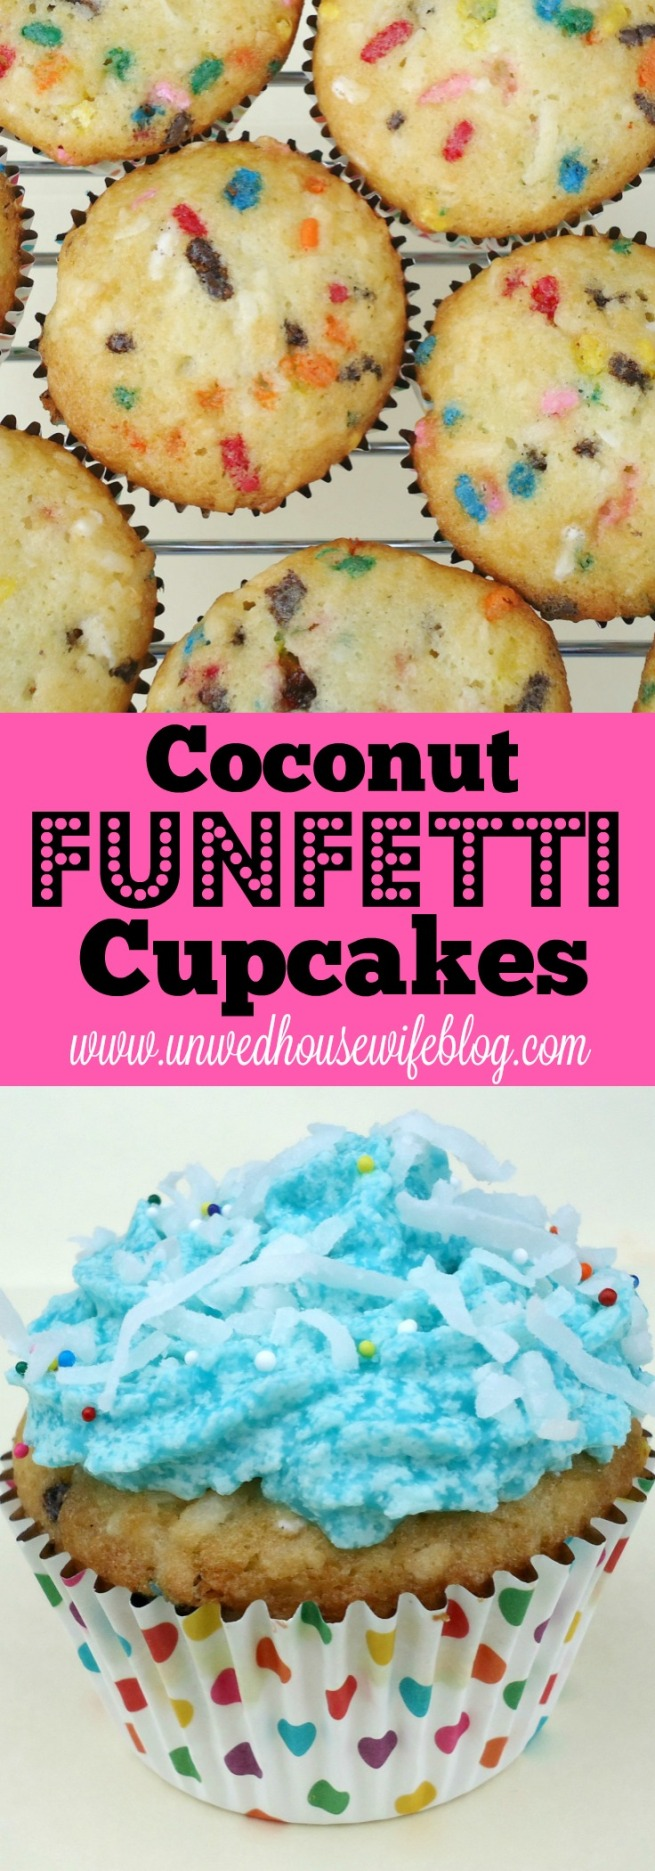 Coconut Funfetti Cupcakes | Unwed Housewife | An unforgettable cupcake recipe with coconut flakes and sprinkles. The funnest, tastiest cupcake recipe around. Perfect for parties, holidays, and weekend fun.